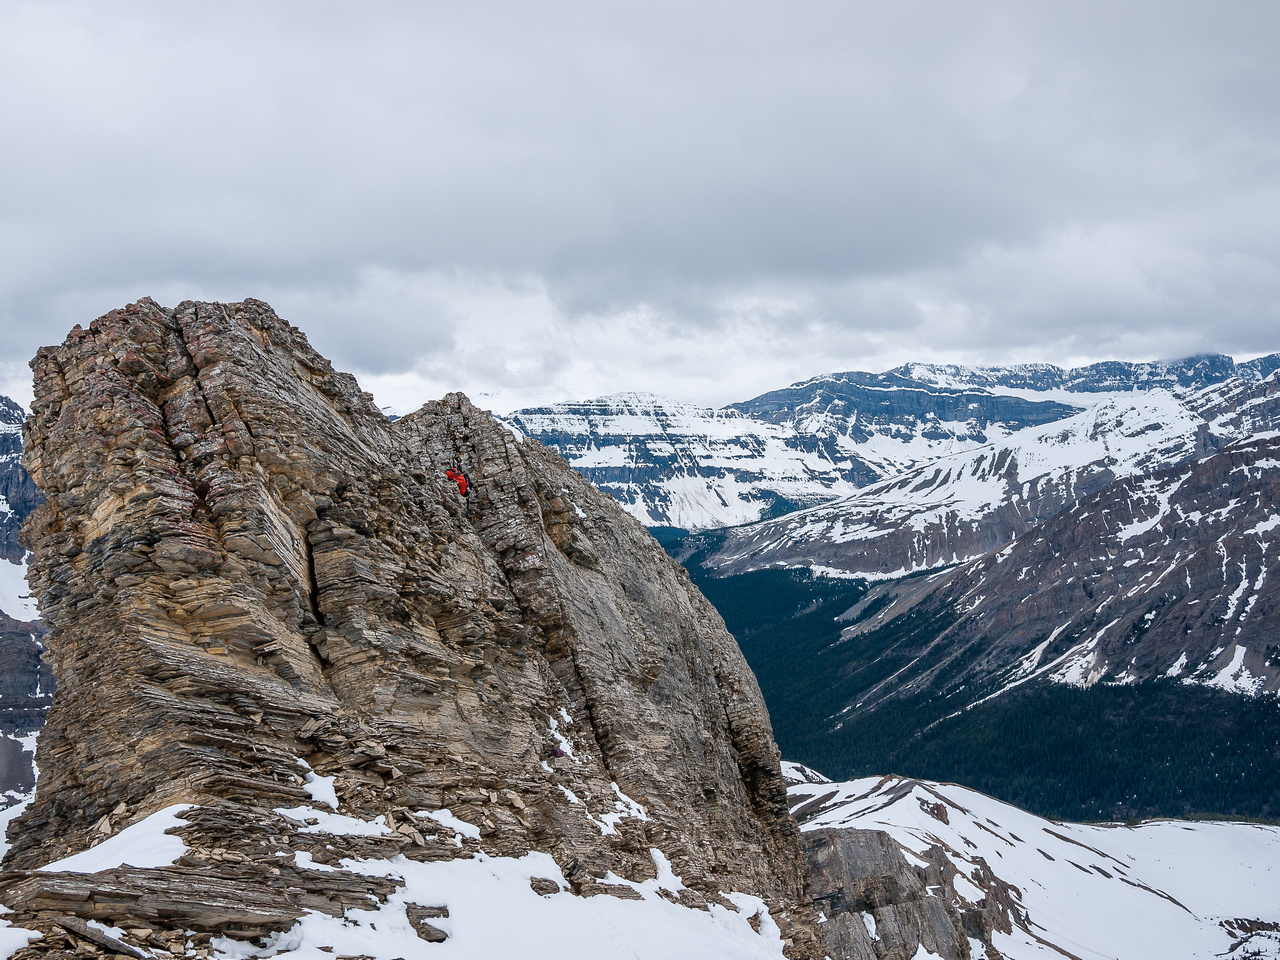 Looking back at the moderate crux.